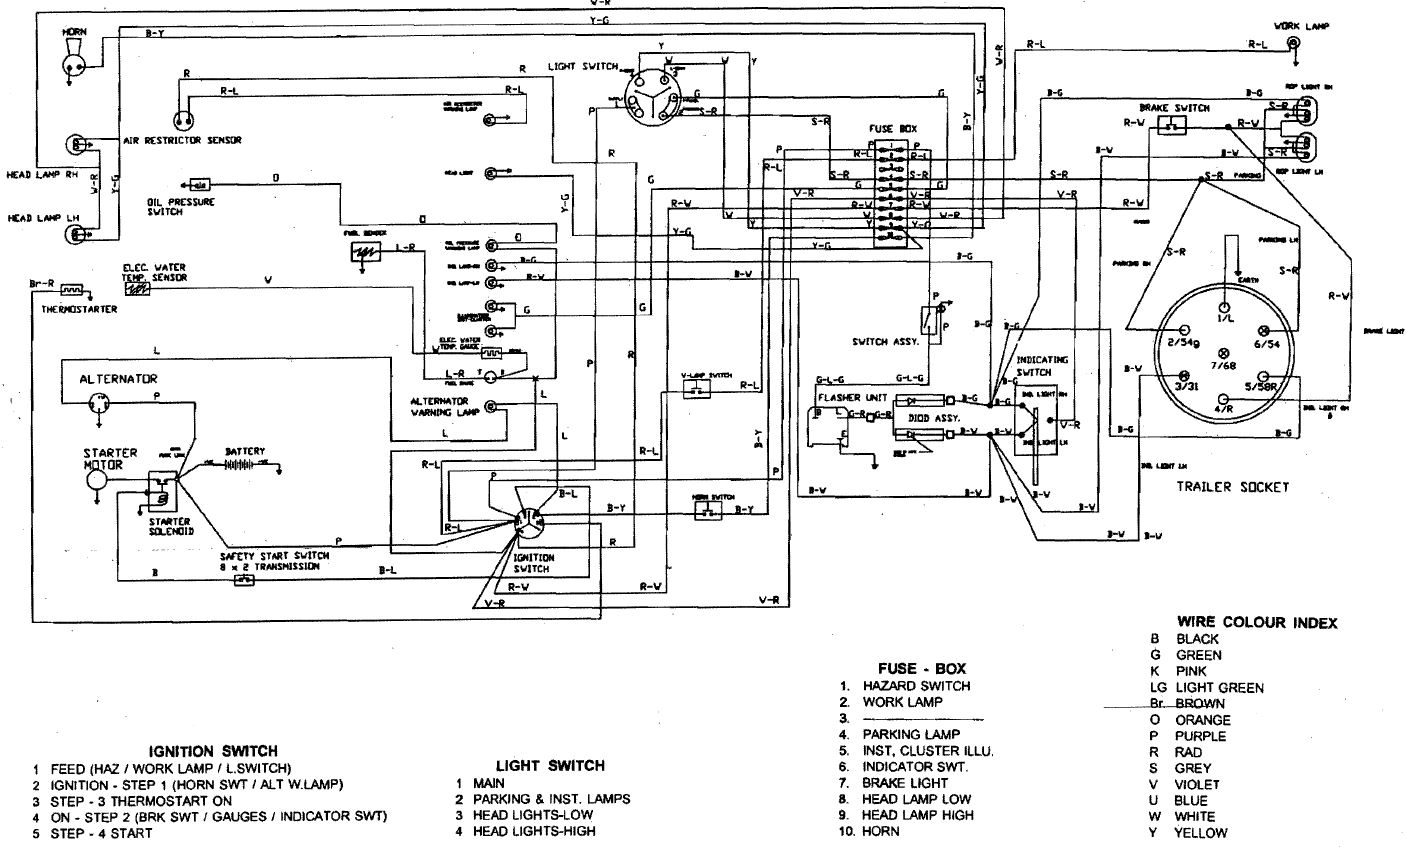 20158463319_b82d524c3d_o ignition switch wiring diagram kubota l175 wiring diagram at bayanpartner.co